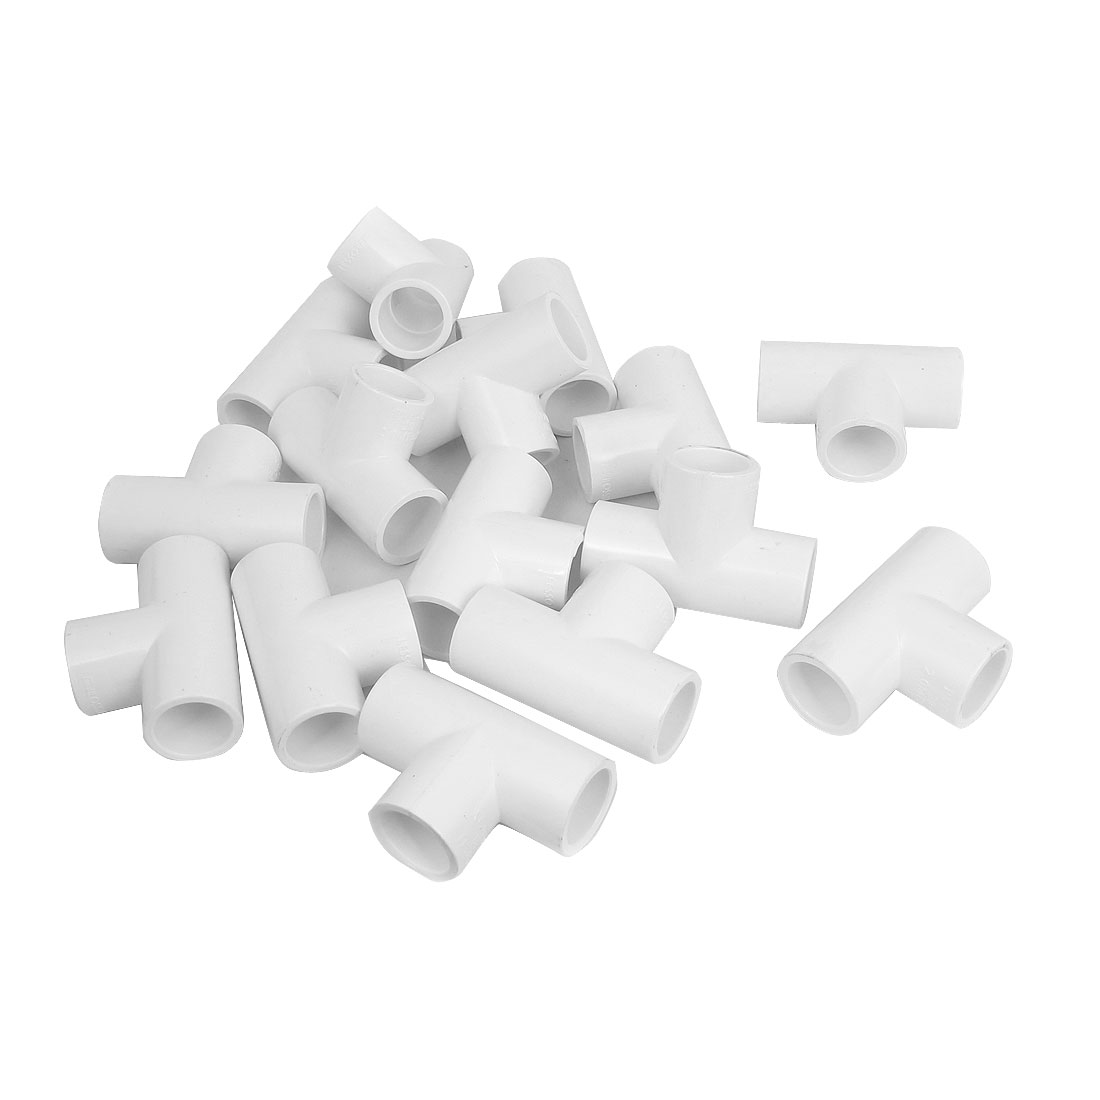 Three Way PPR Pipe Fitting Tee Connector Adapter White 20mm 15 Pcs